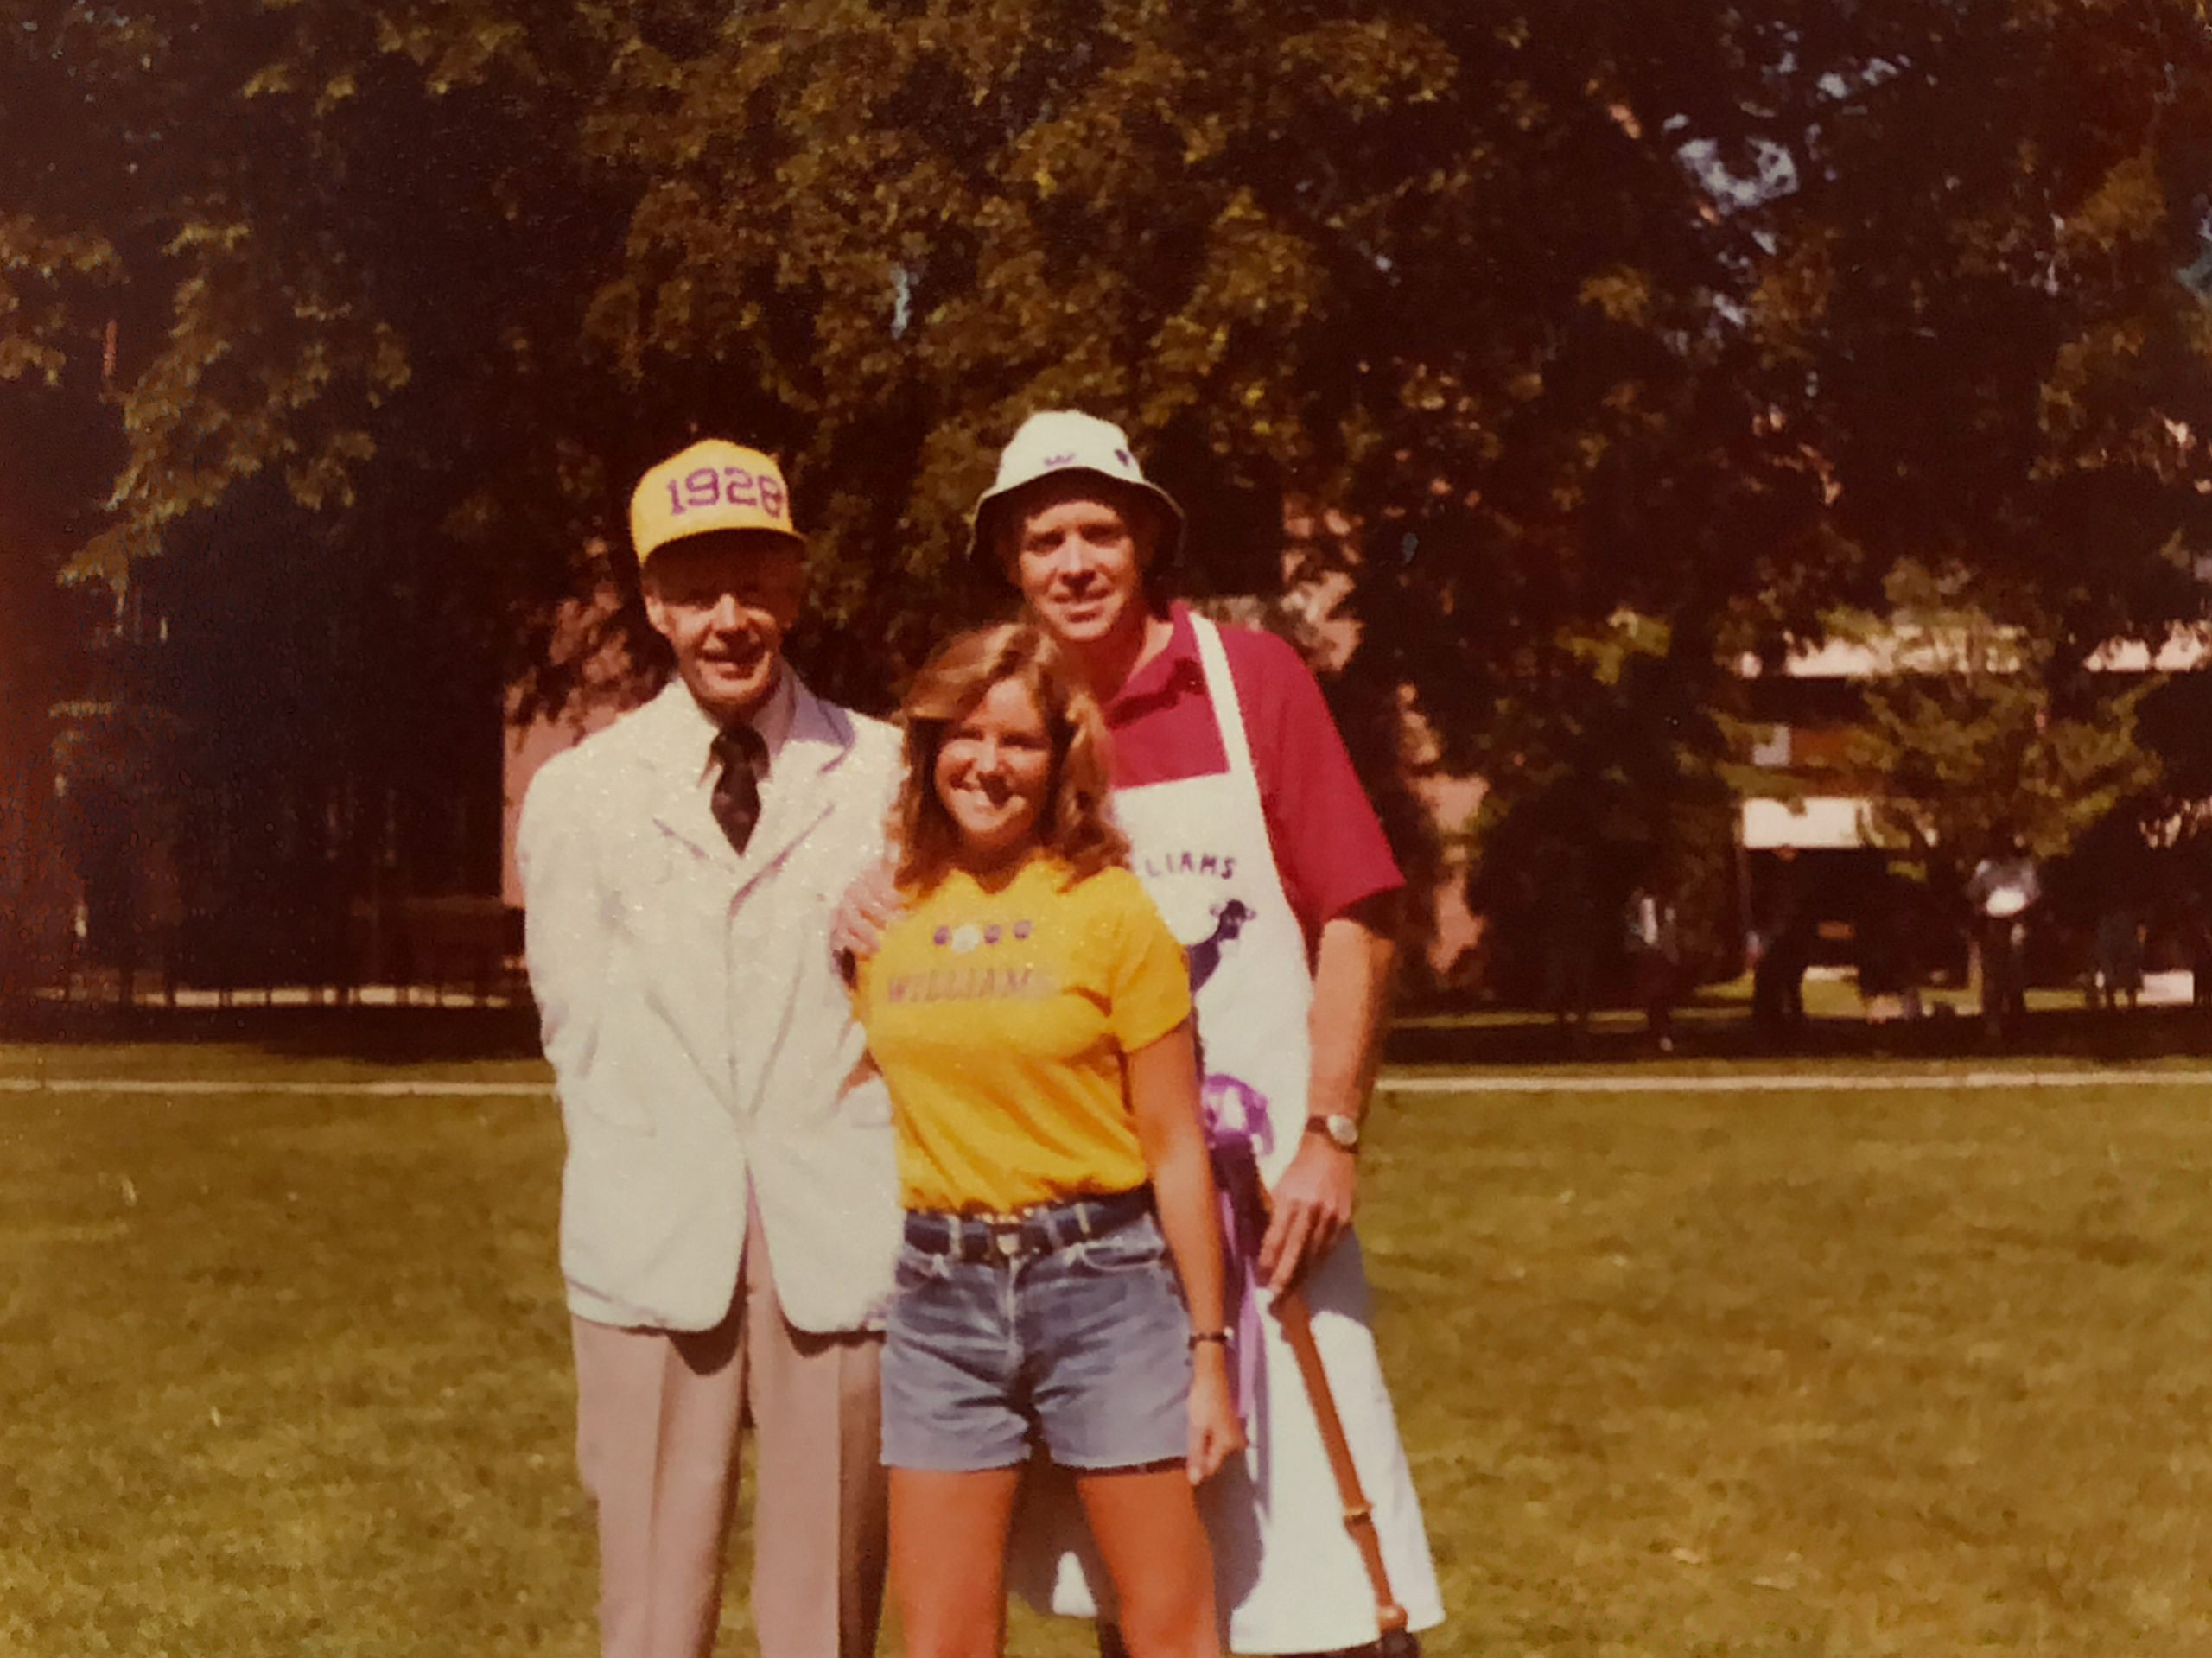 Dykeman Sterling '28, Amy Sterling '78 and Peter Sterling '53